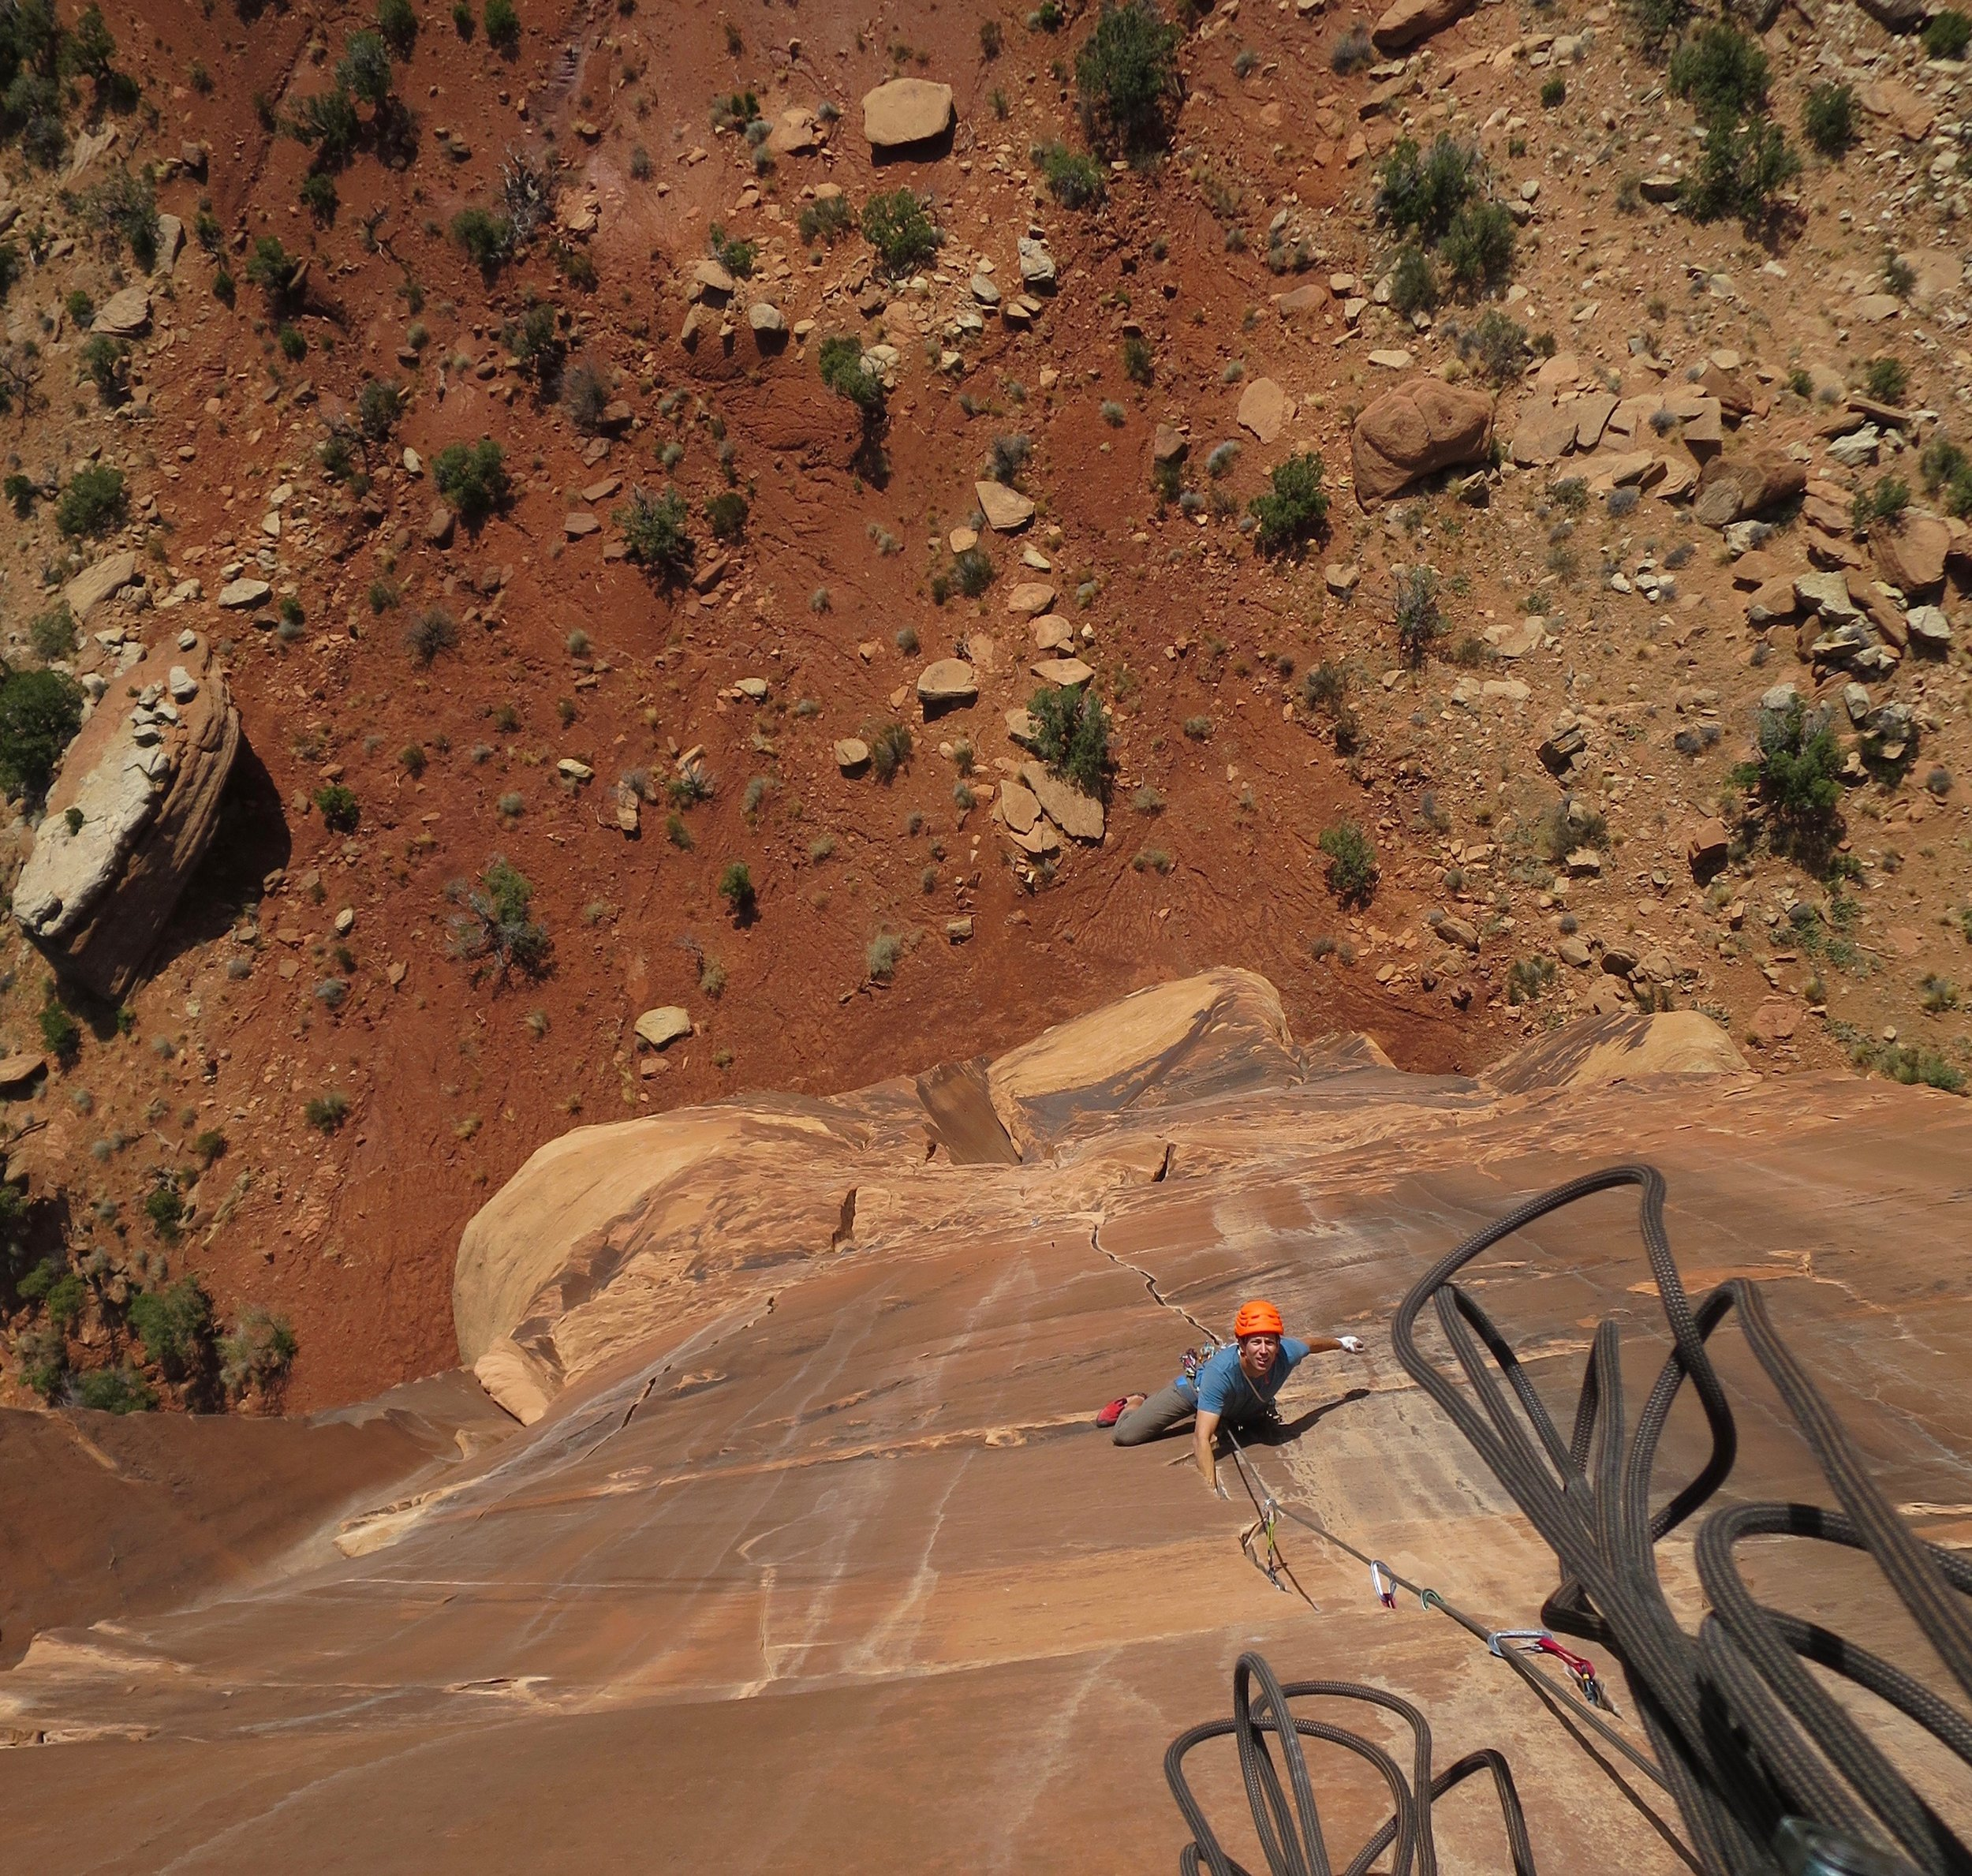 Jonathon Spitzer coming up to the belay on Medicine Man on Sentinal Spire in Colorado National Monument